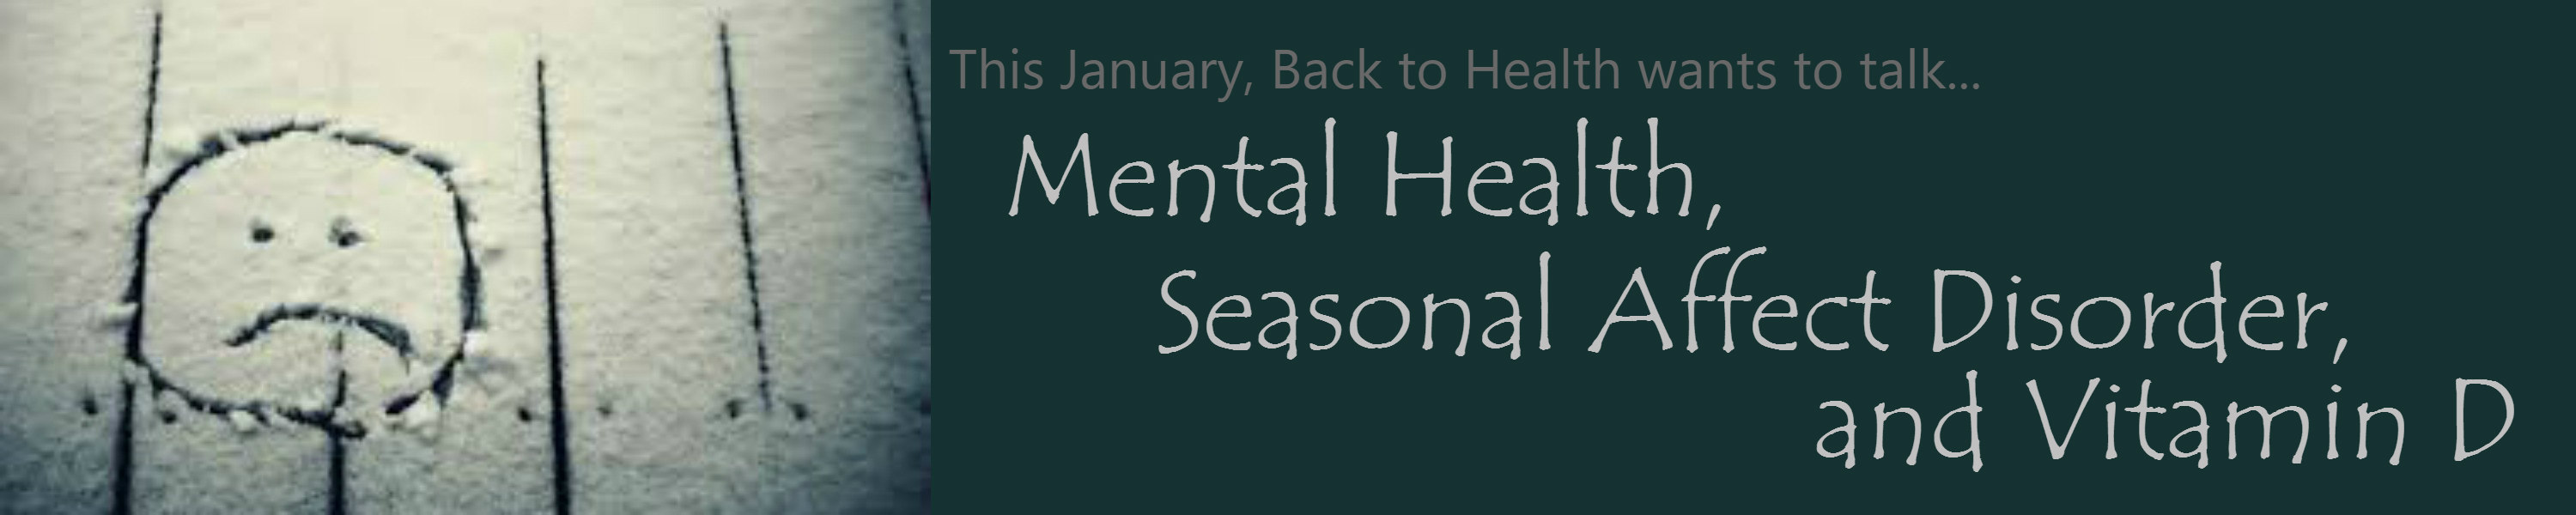 Mental Health, Seasonal Affective Disorder (SAD), and Vitamin D